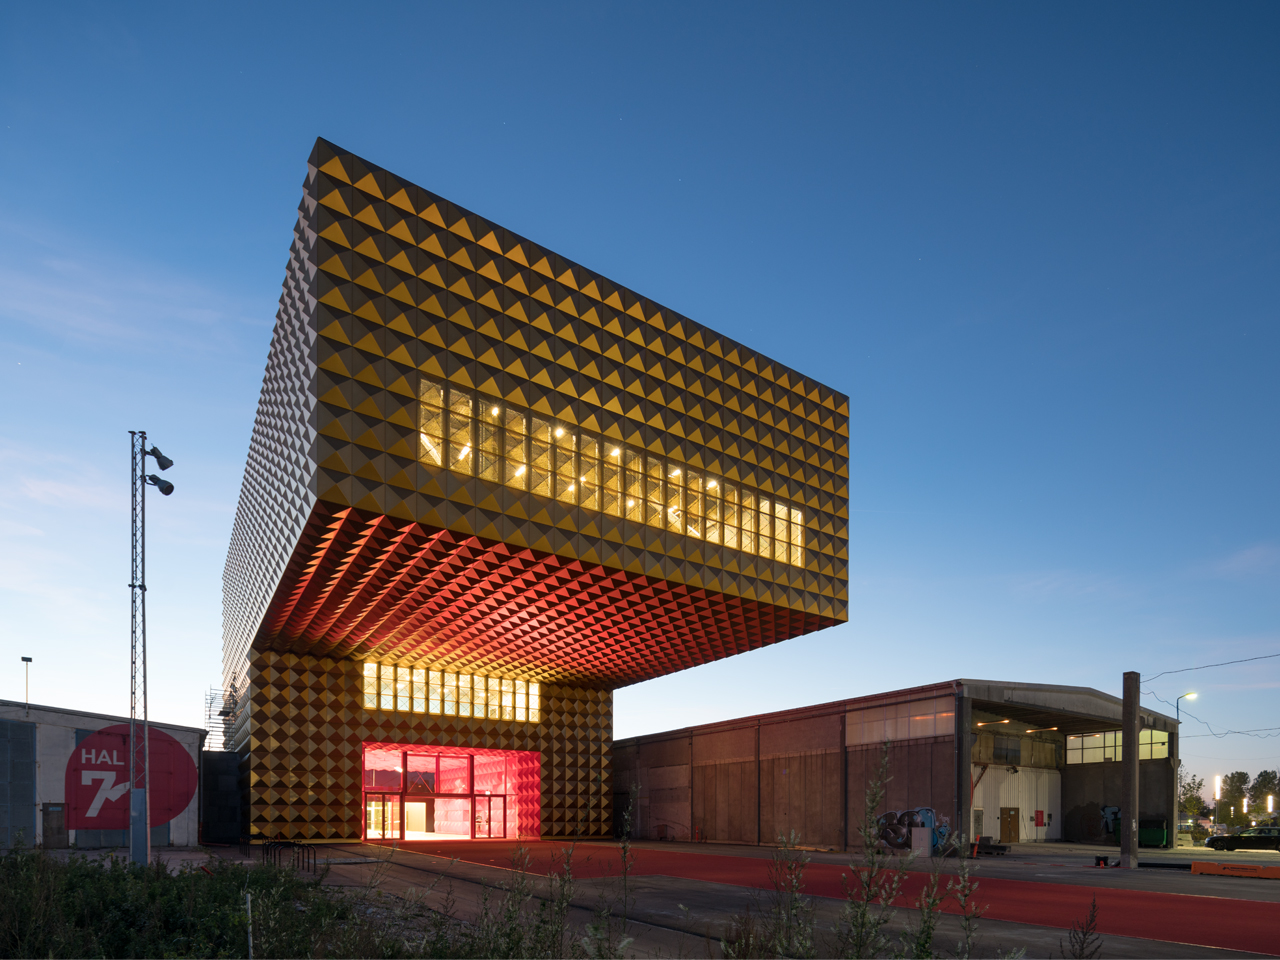 MVRDV's Ragnarock named by National Geographic one of the world's best museums